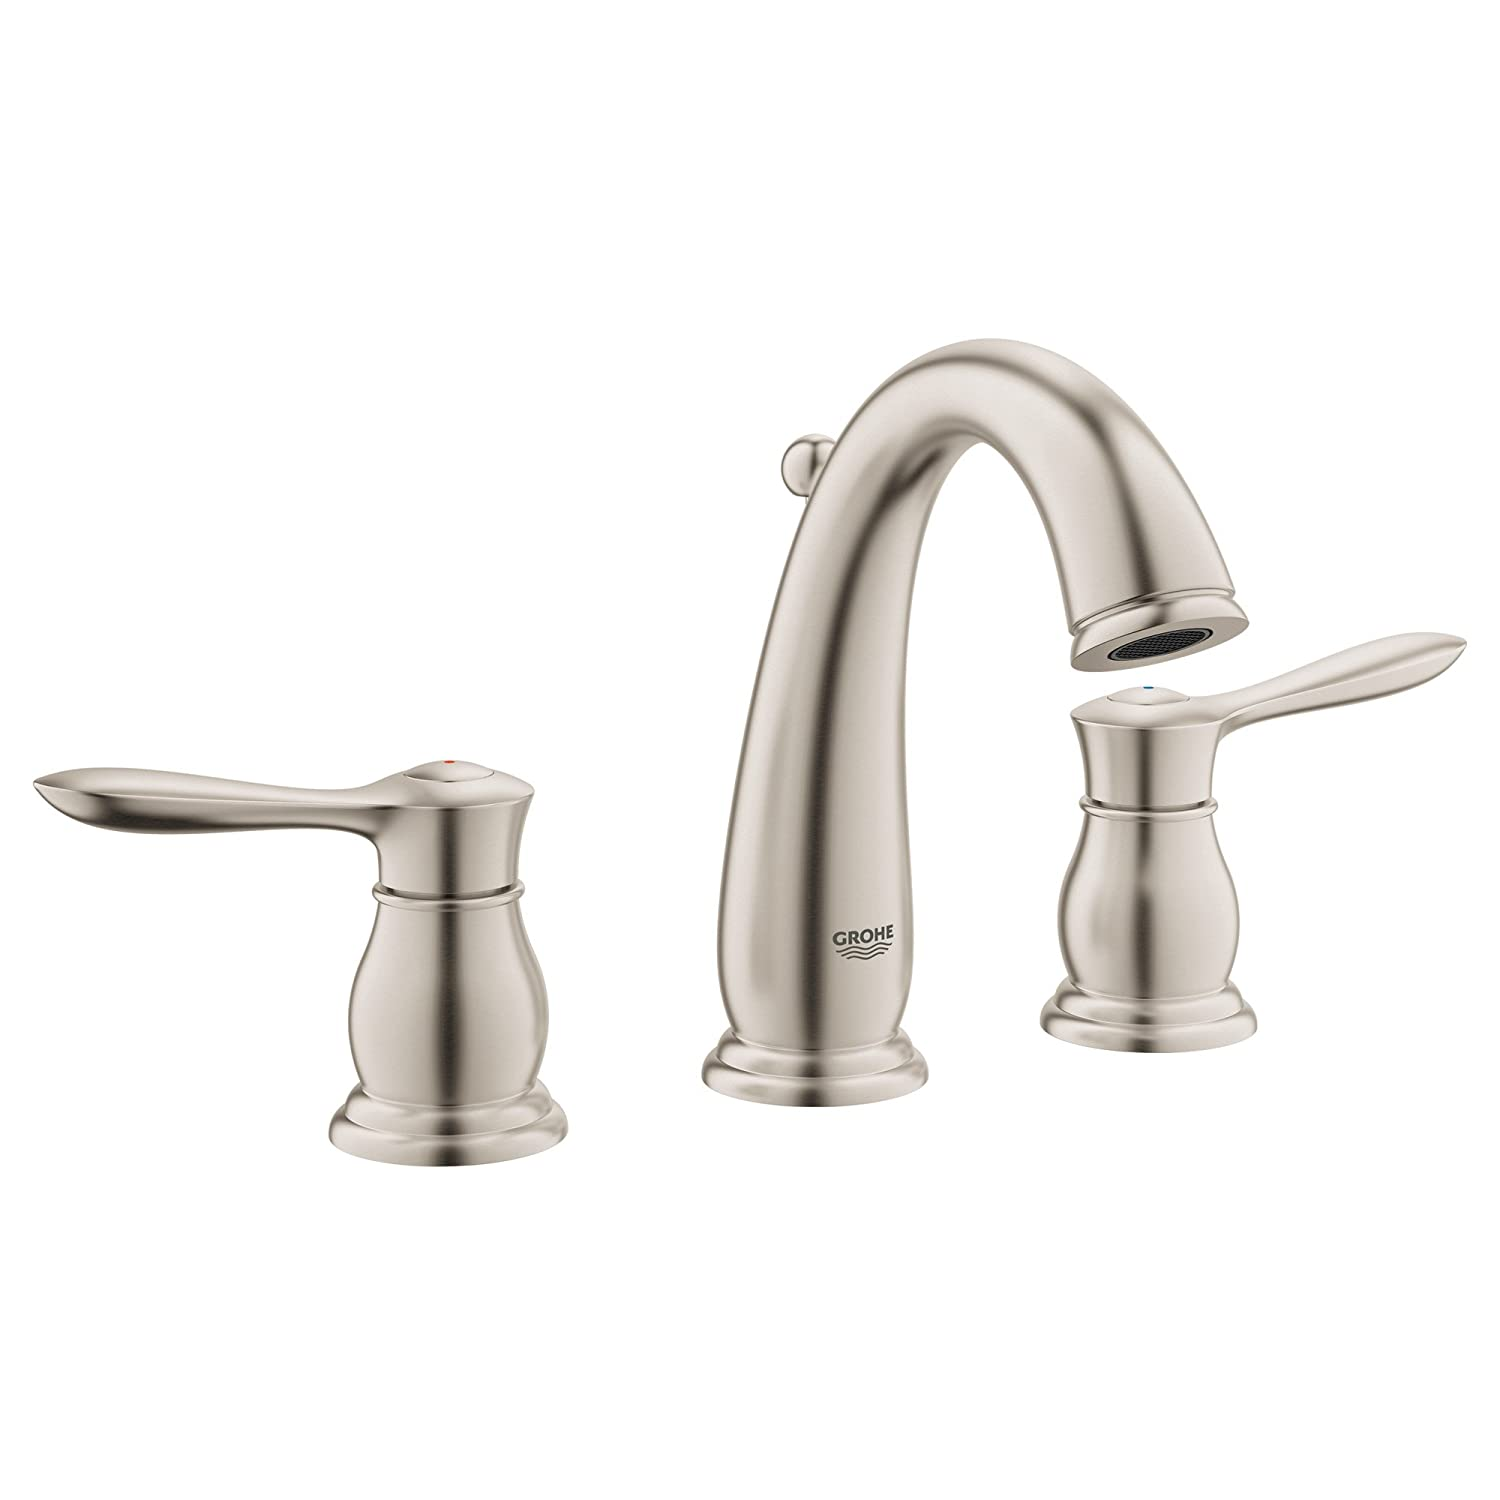 handle faucets p in sink bathroom single faucet spotshield sp rila centerset brushed polished delta nickel